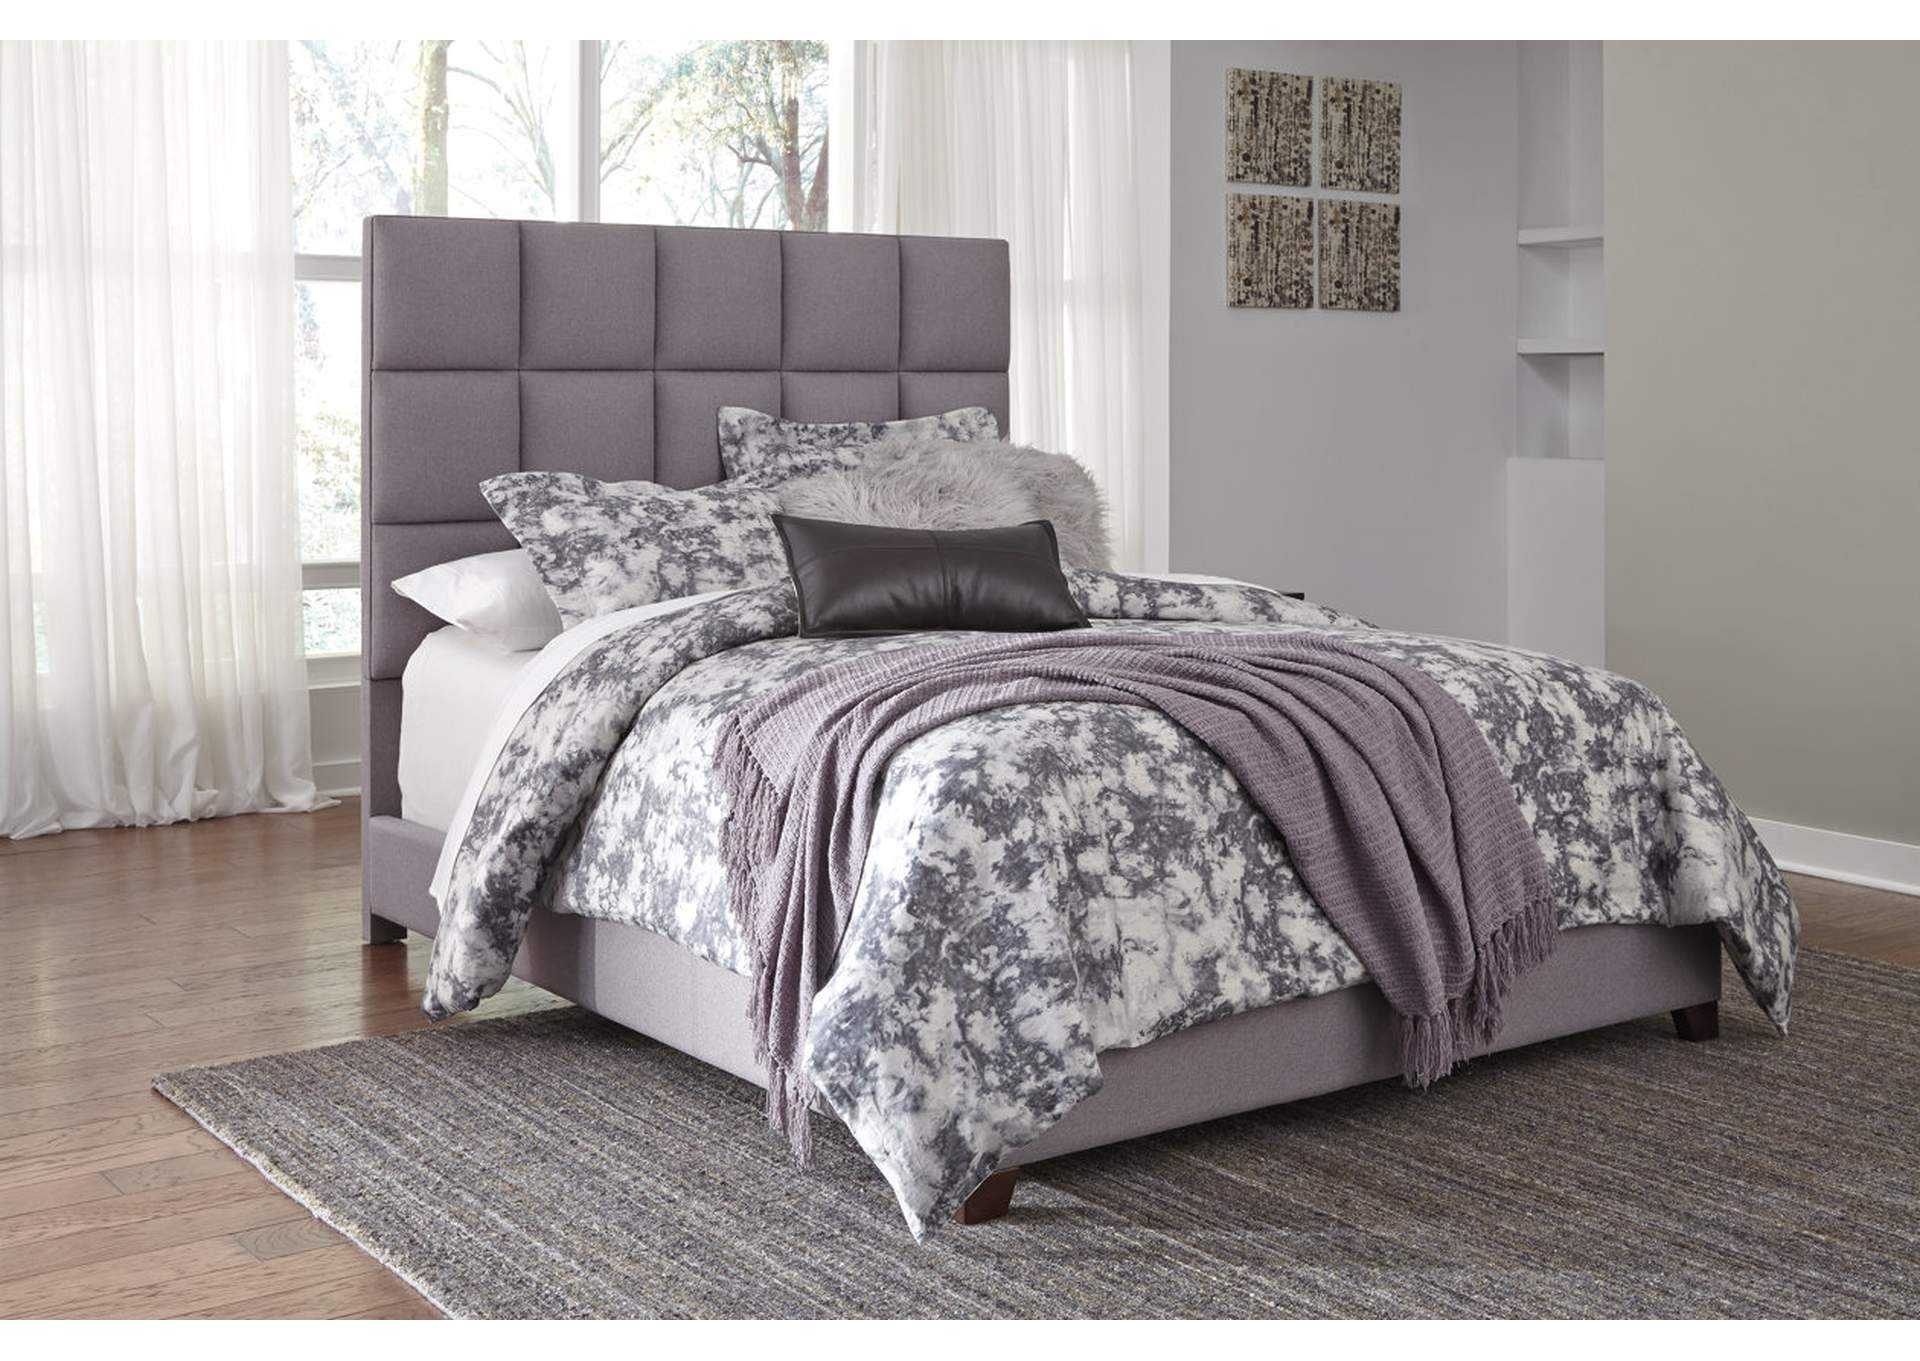 Queen Upholstered Bed,Signature Design By Ashley